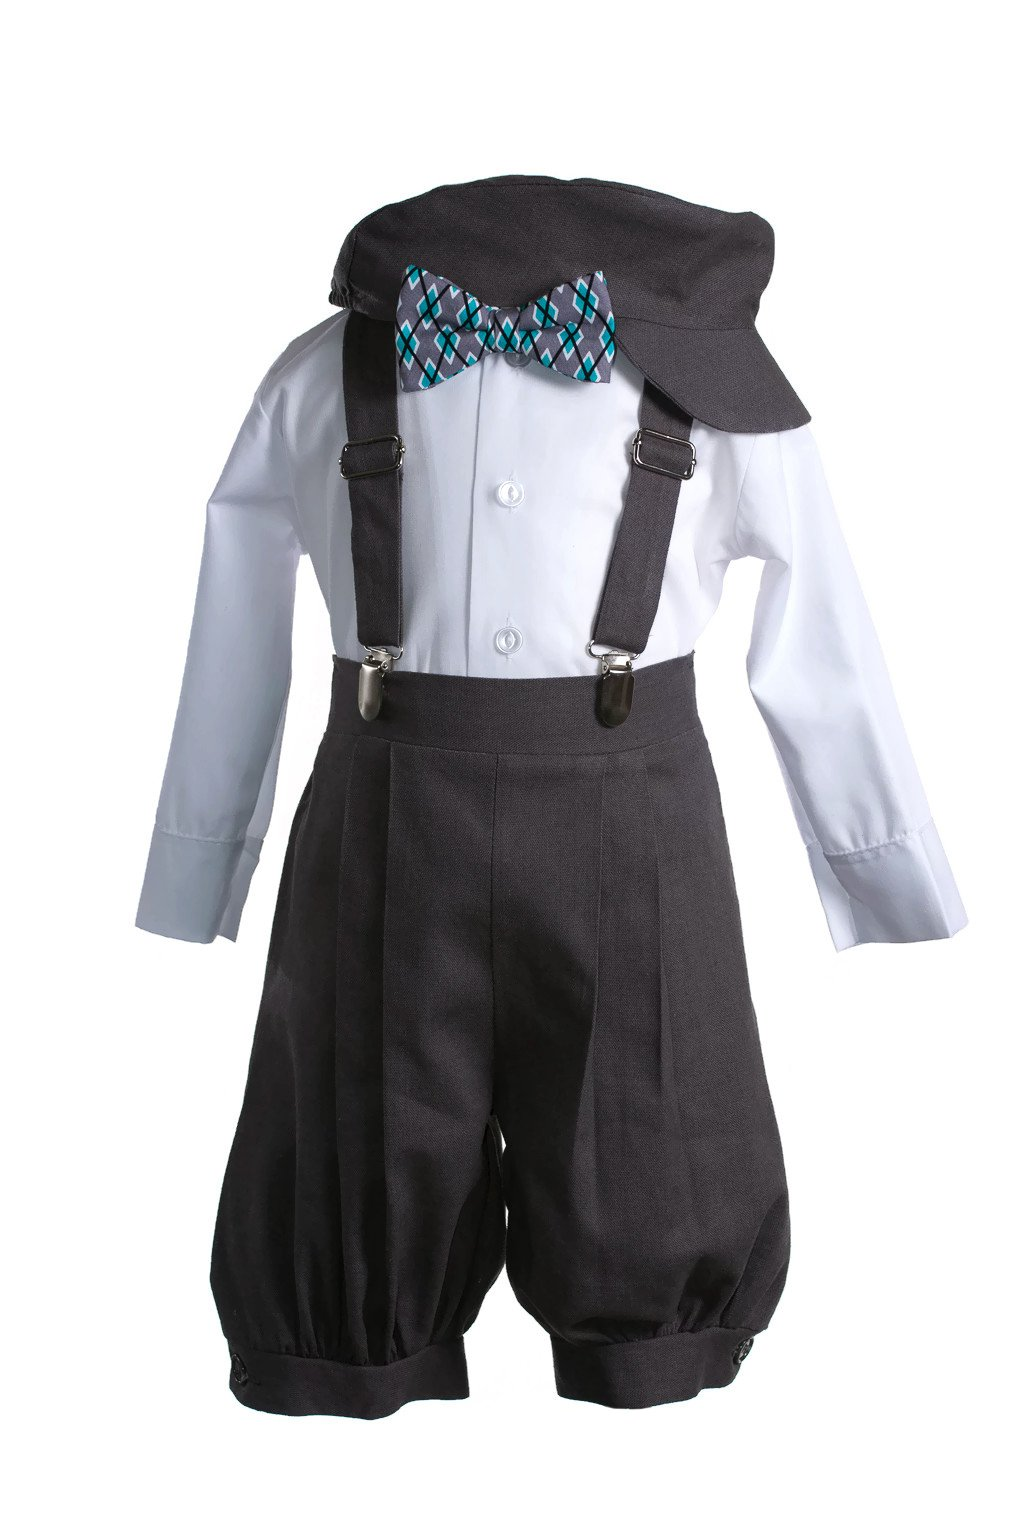 Boys Dark Grey Linen Knicker Outfit Aqua Argyle Bow Tie Baby and Toddlers (2 Toddler) by Tuxgear